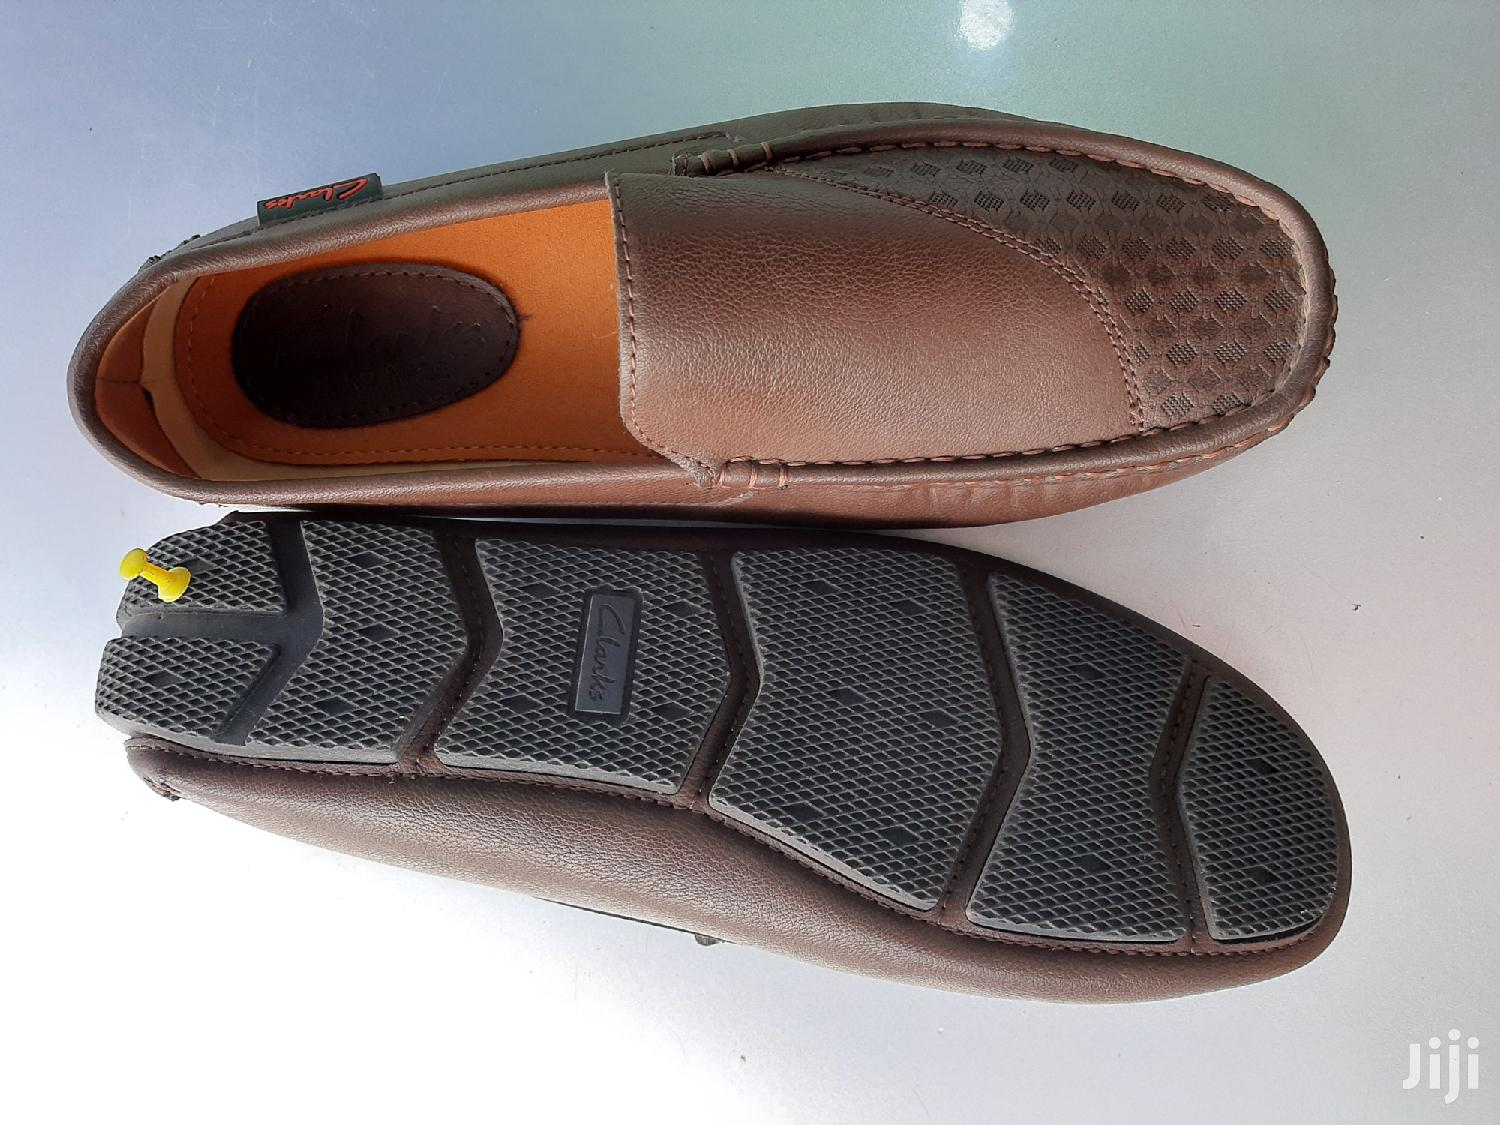 Patent Leather Clarks Loafers-Brown-Sz 40 | Shoes for sale in Ga West Municipal, Greater Accra, Ghana